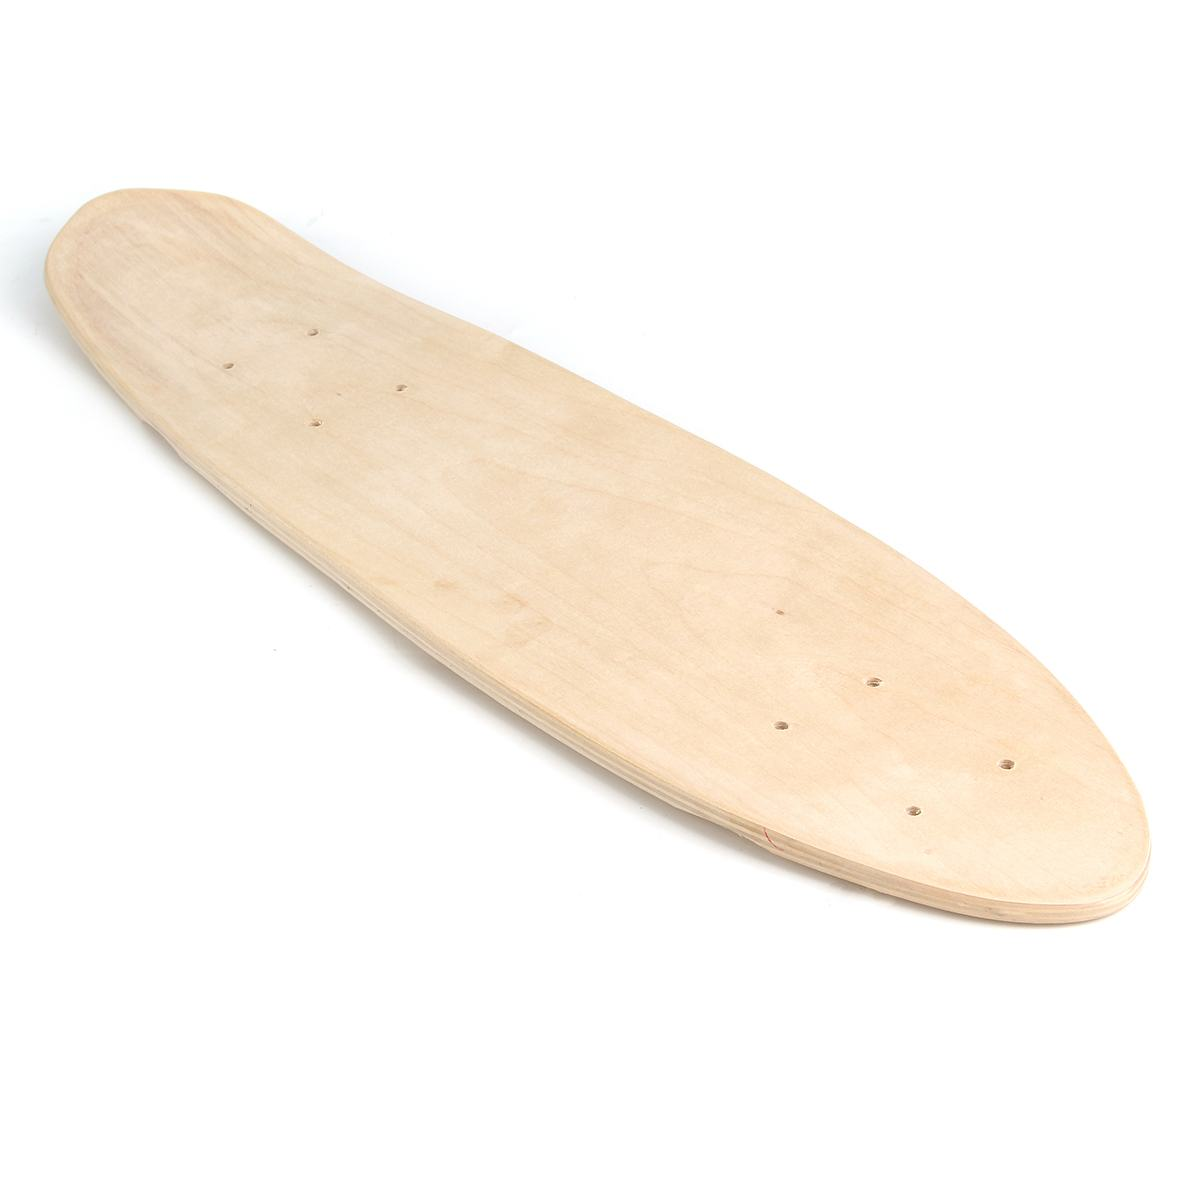 24 Inch Fish Skateboard Natural Single Foot Wooden Maple Blank Deck Board Parts Happy Baby DIY Skateboard Accessories